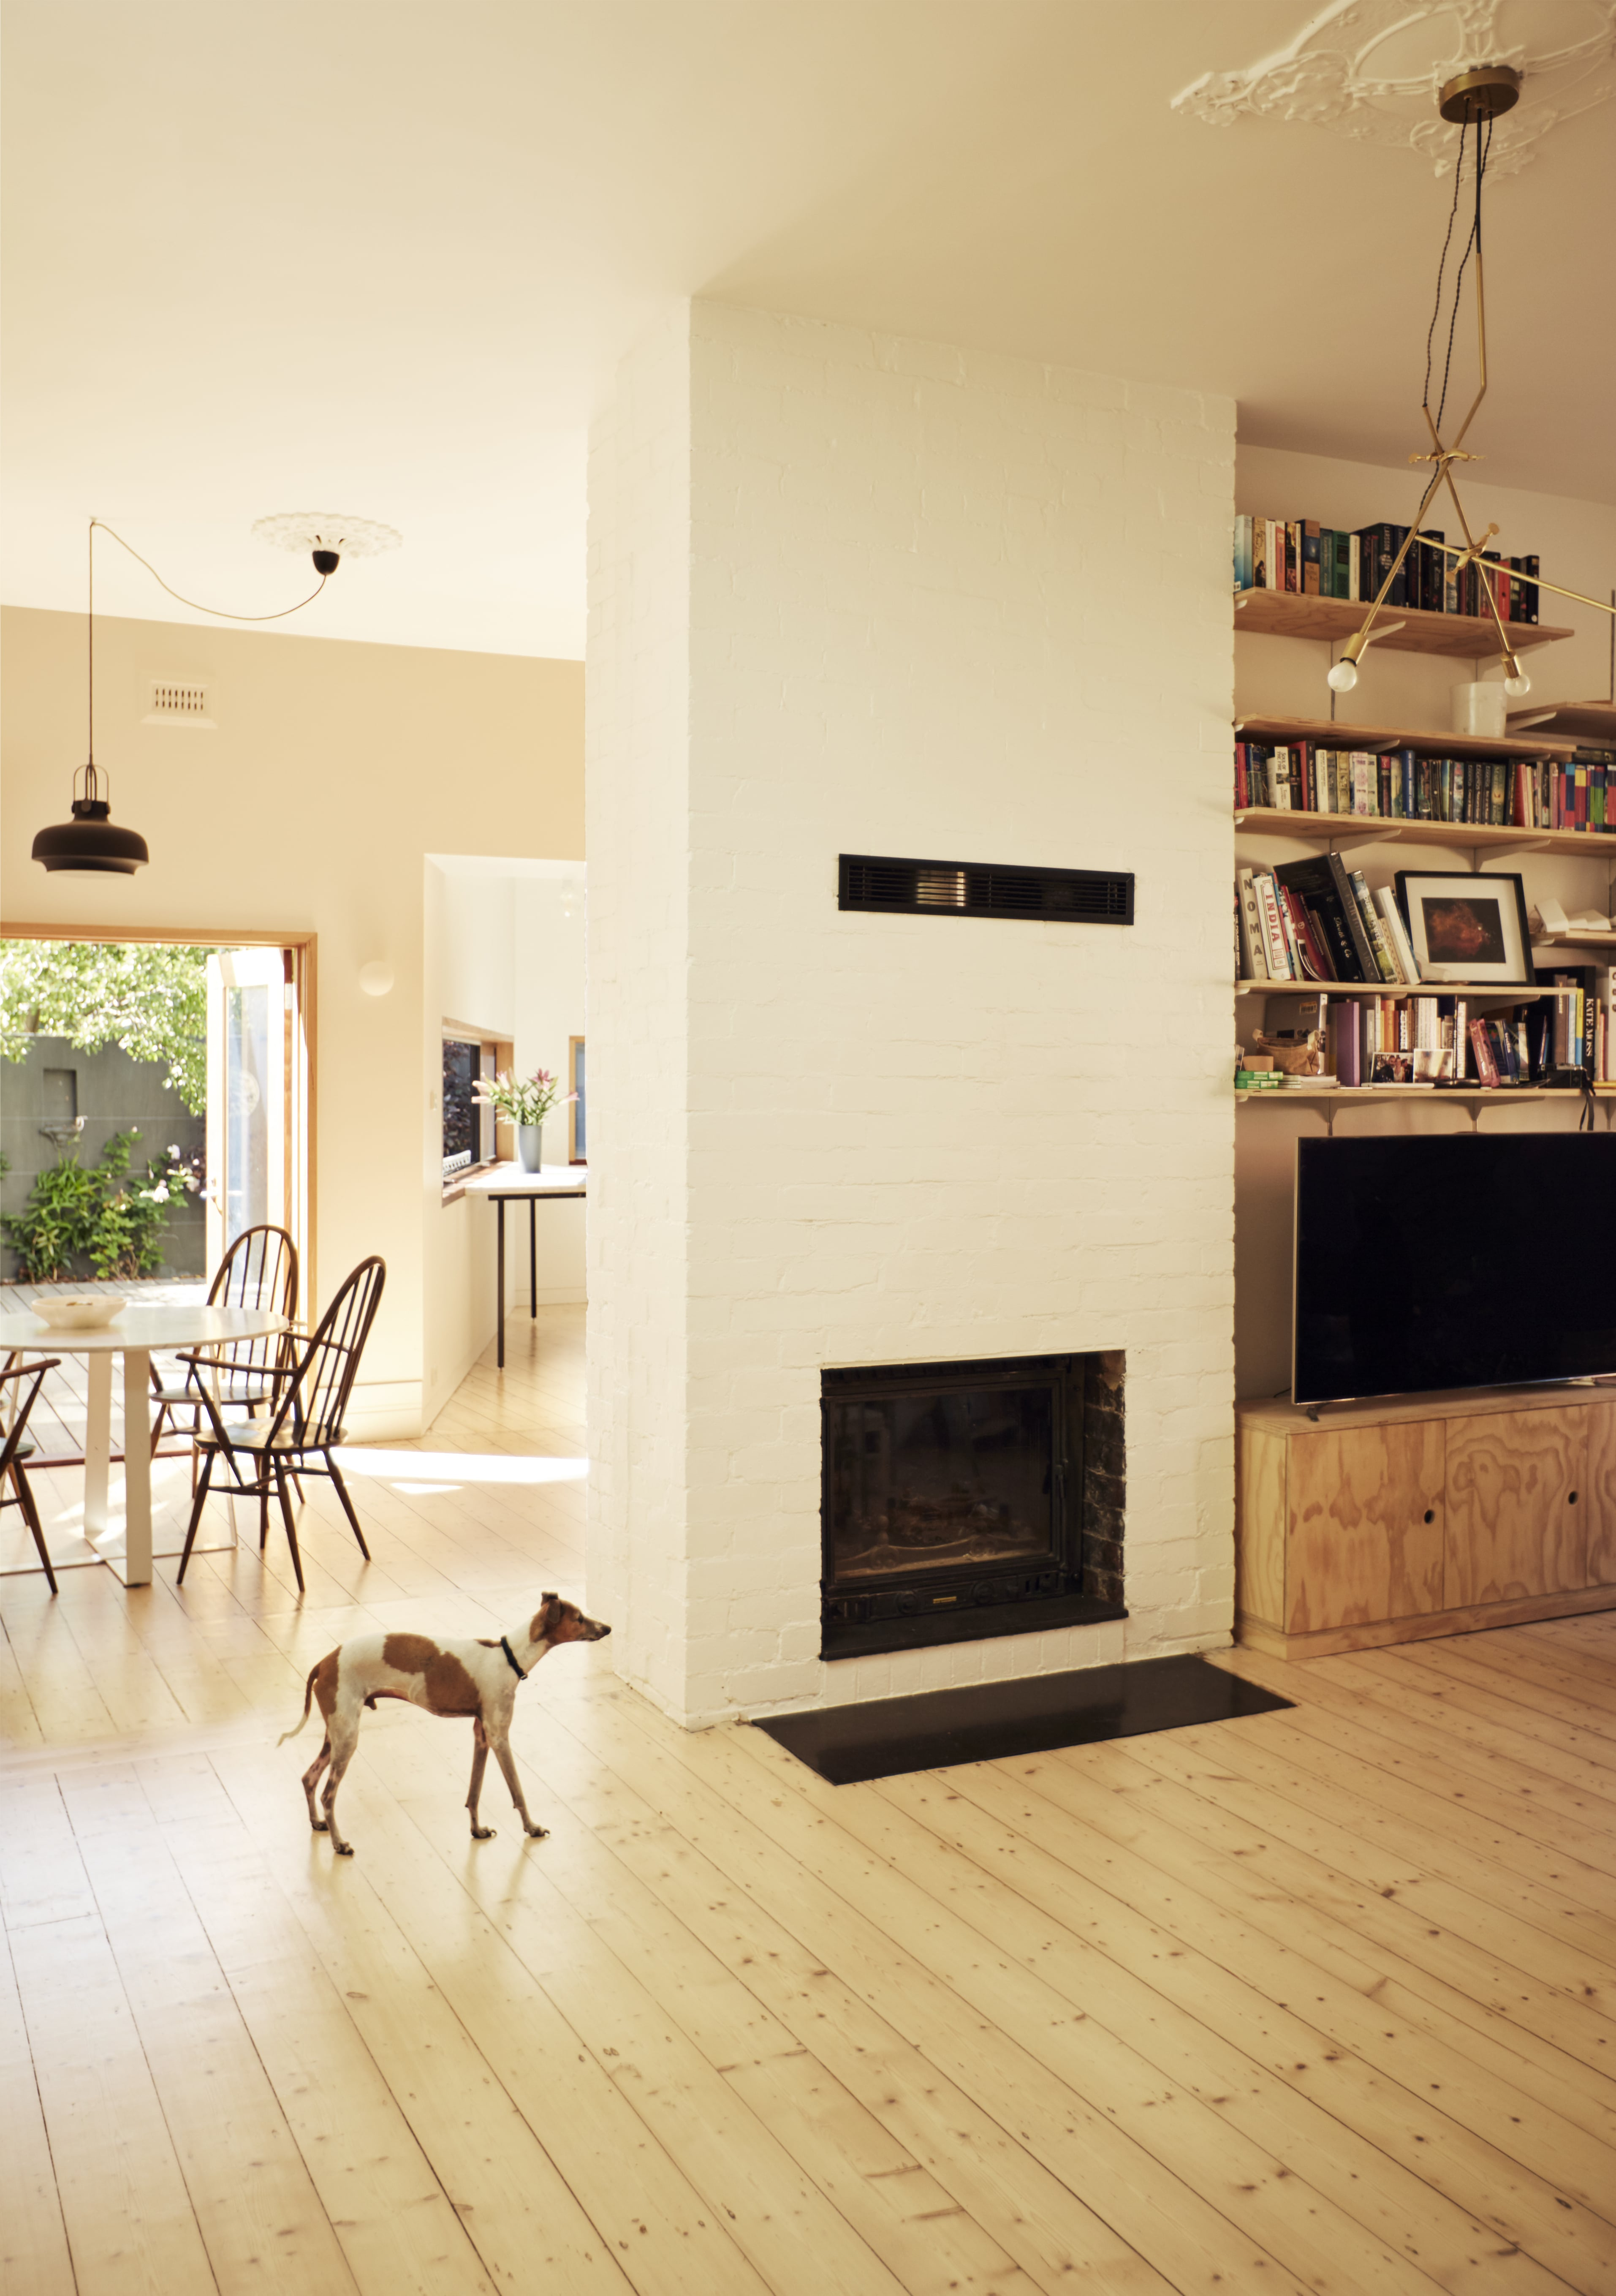 Gallery Of St Kilda East House By Claire Scorpo Local Australian Contemporary Architecture & Interiors Melbourne Image 7